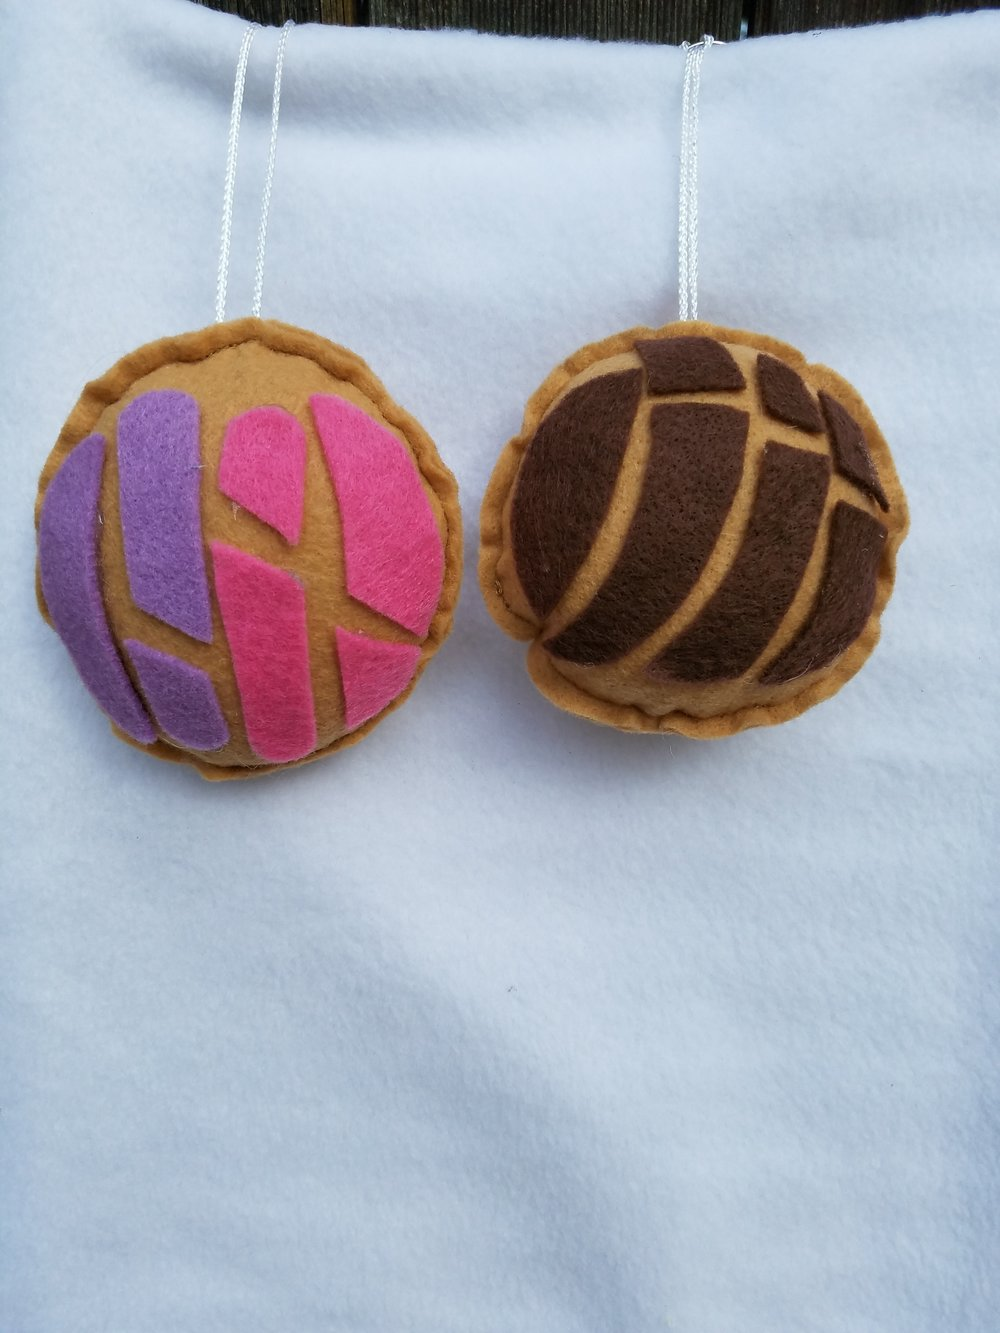 Concha Key Chains from Lovely Mrs Wheels